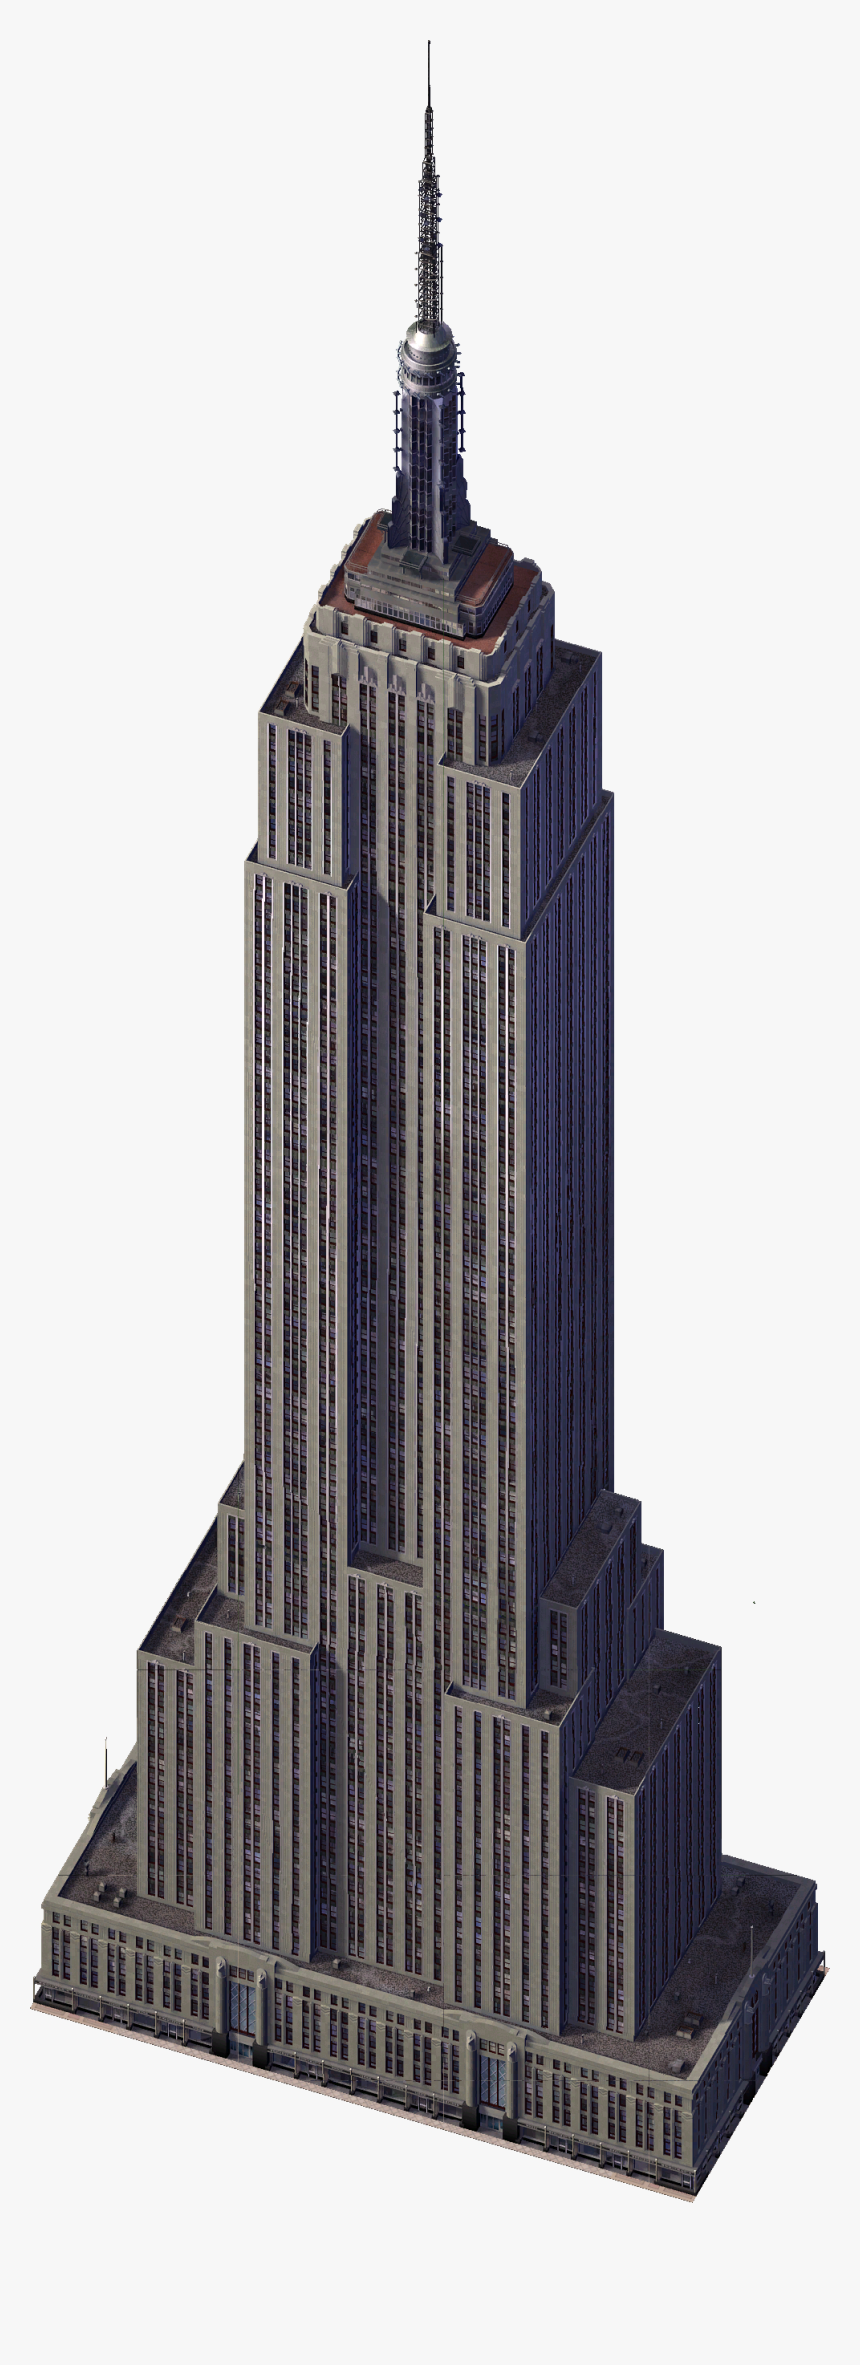 Empire State Building Png, Transparent Png, Free Download